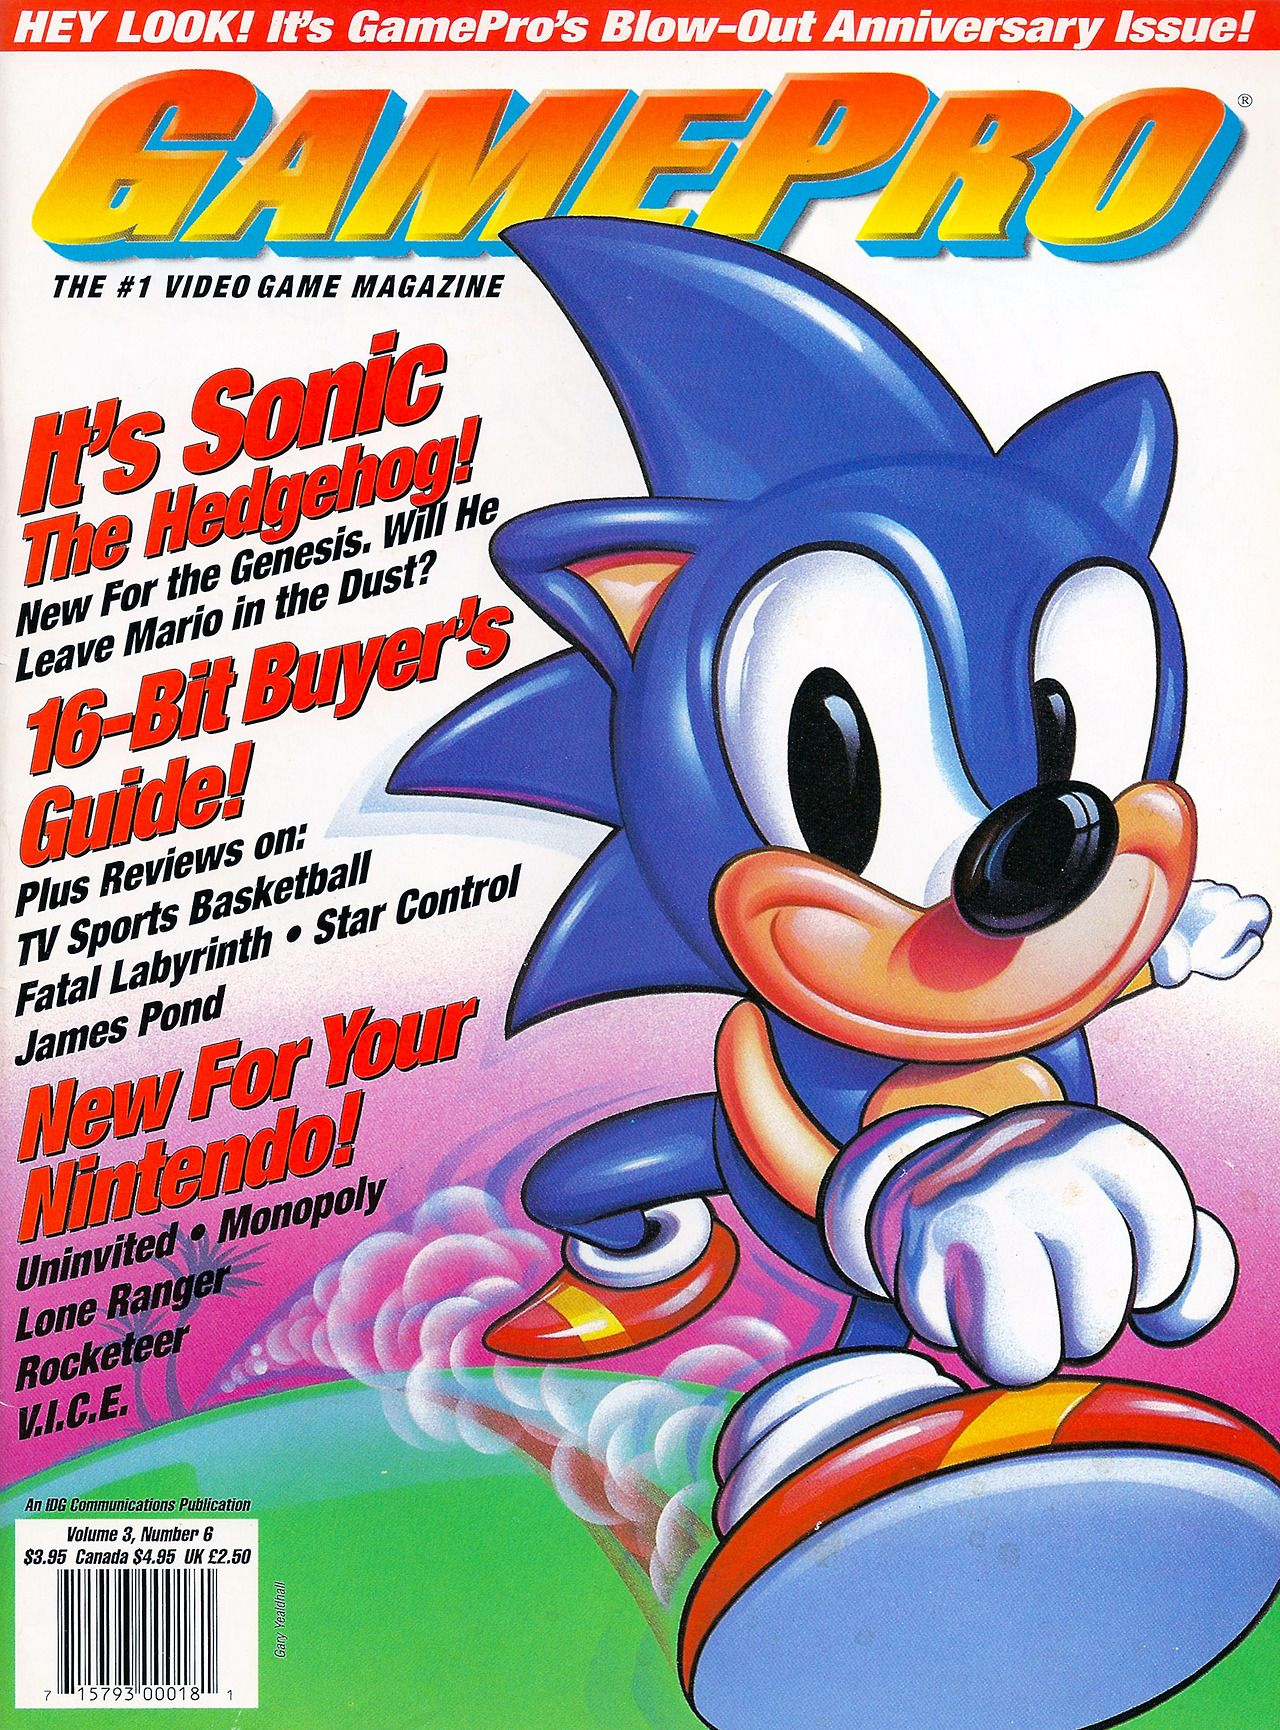 Gamepro Issue 23 June 1991 It S Sonic The Hedgehog Will He Leave Mario In The Dust Bit Of A Creepy Image Too Follow Oldg Gamepro Gaming Magazines Sonic